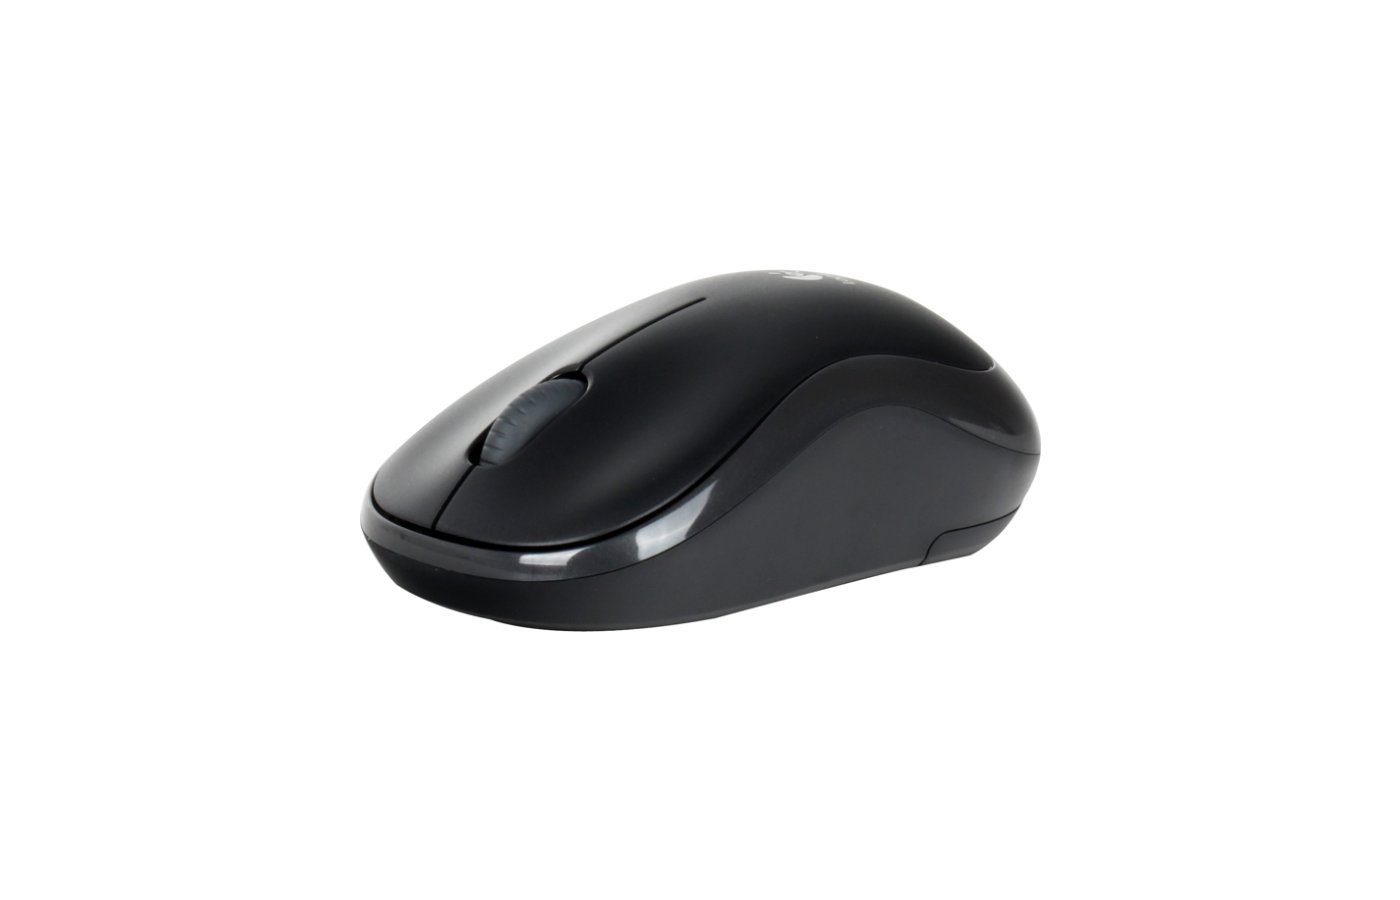 Мышь беспроводная Logitech Wireless Mouse M175 Black USB